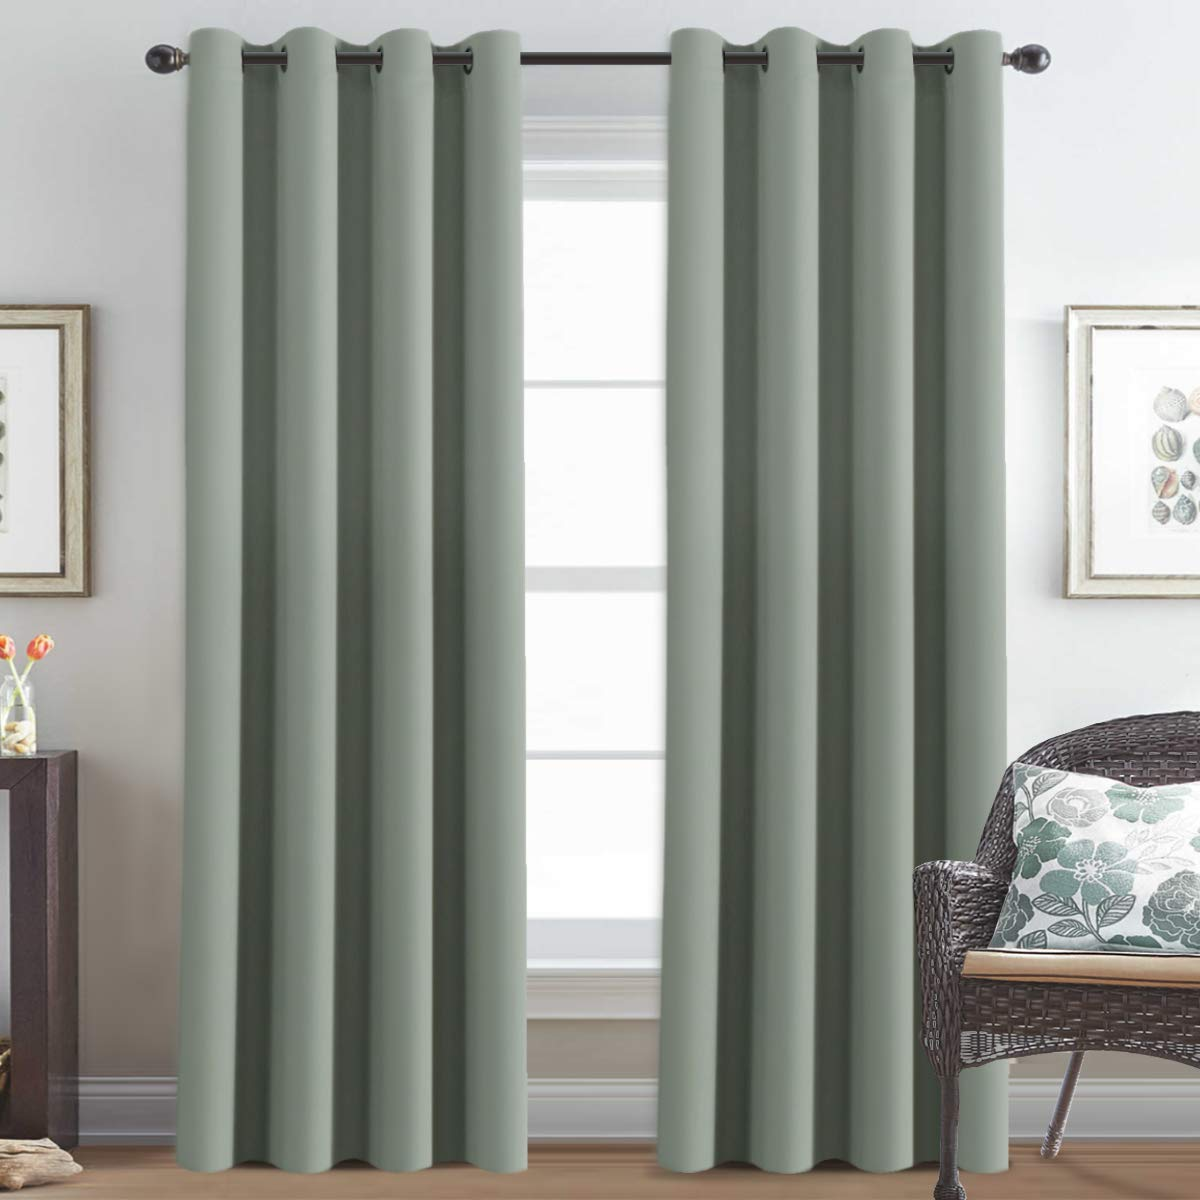 Window Treatment Curtains/Drapes Blackout for Bedroom 84 Inch, Room Darkening Thermal Curtains for Living Room, Noise Reducing Sound Proof Solid Grommet Curtain (One Panel, 52 by 84 Inch Long, Sage)